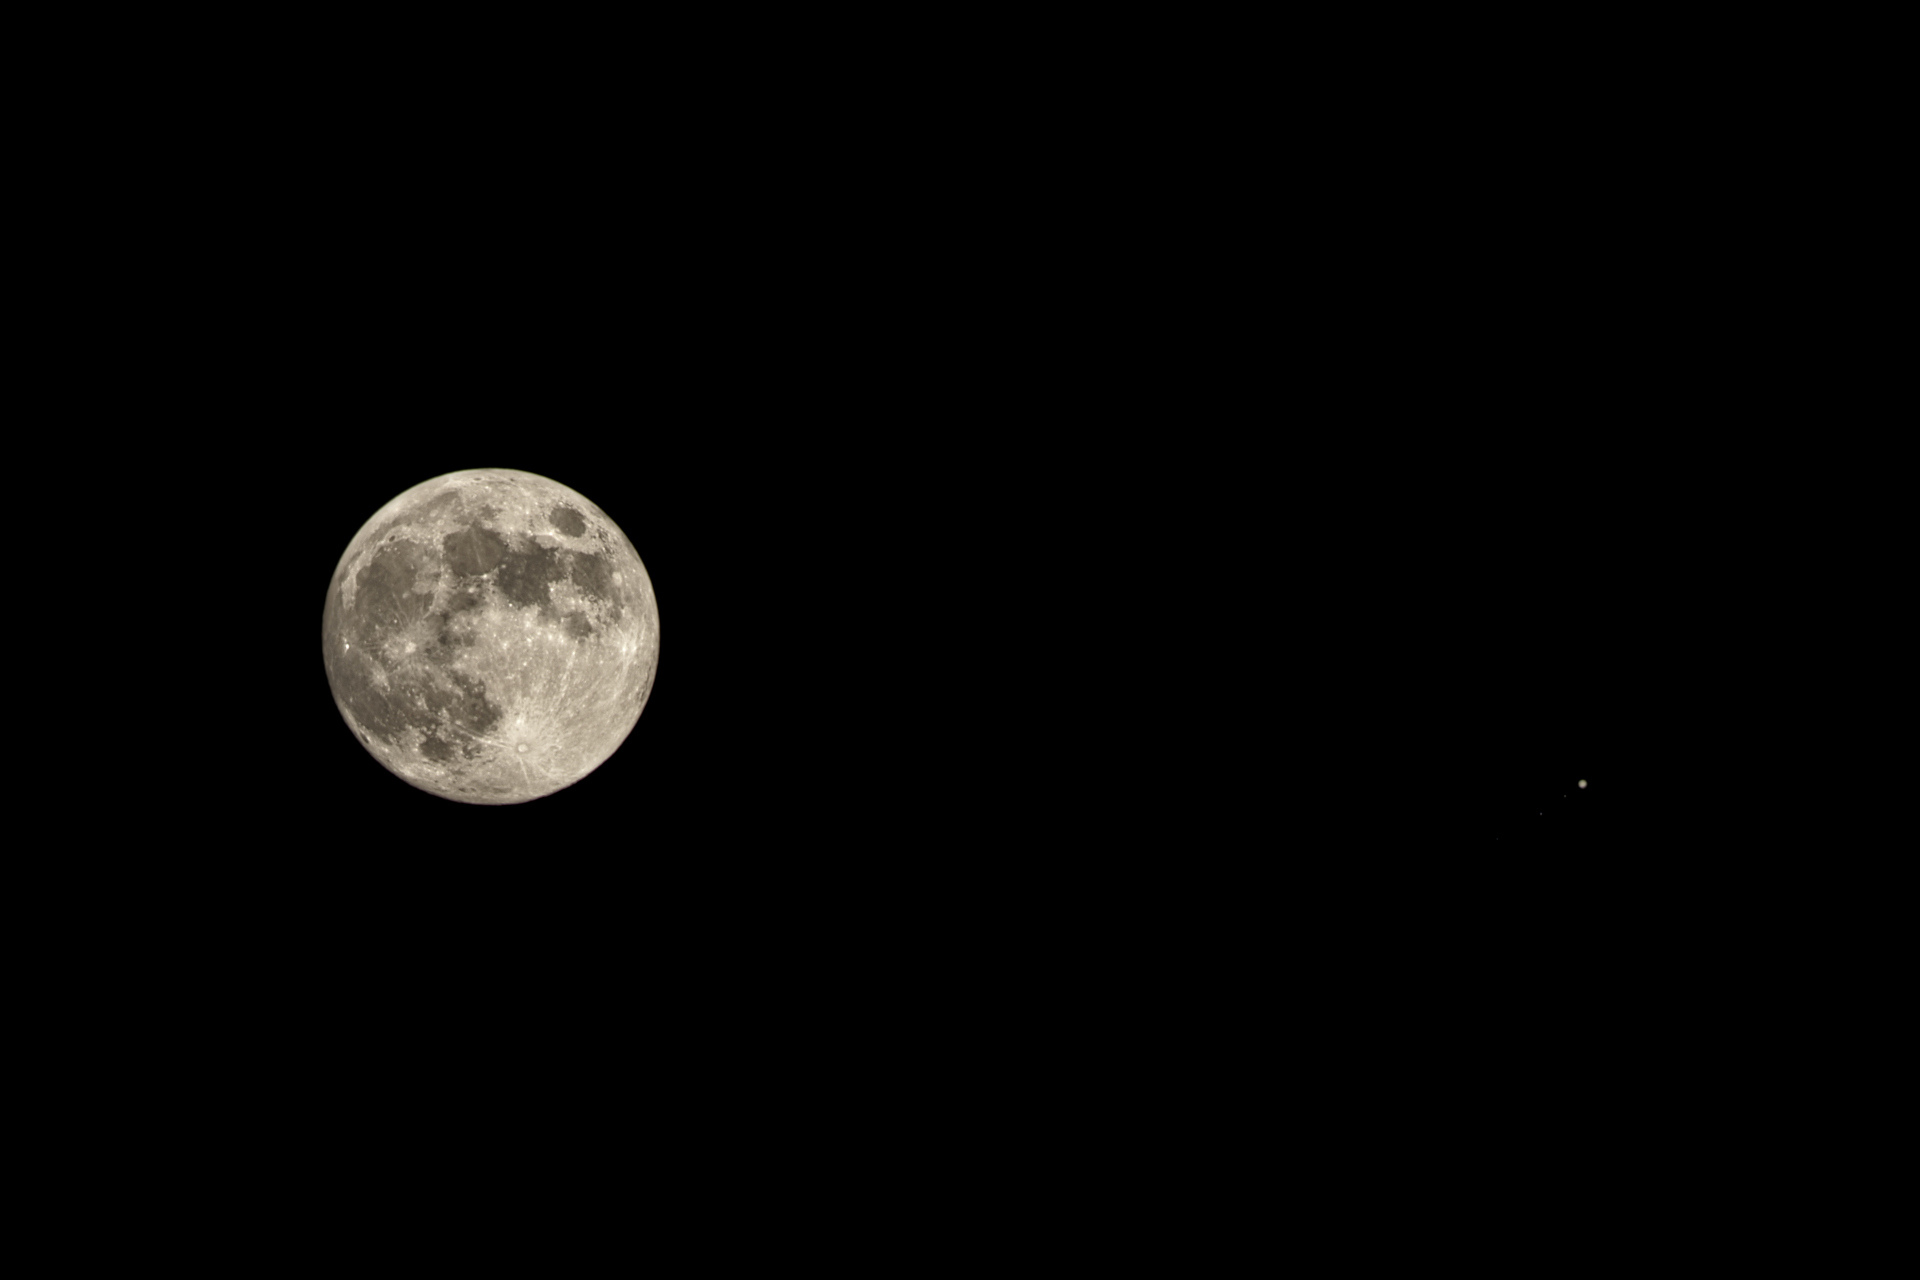 190616 - Conjonction Lune Jupiter - Rubinar 300 mm - 600D